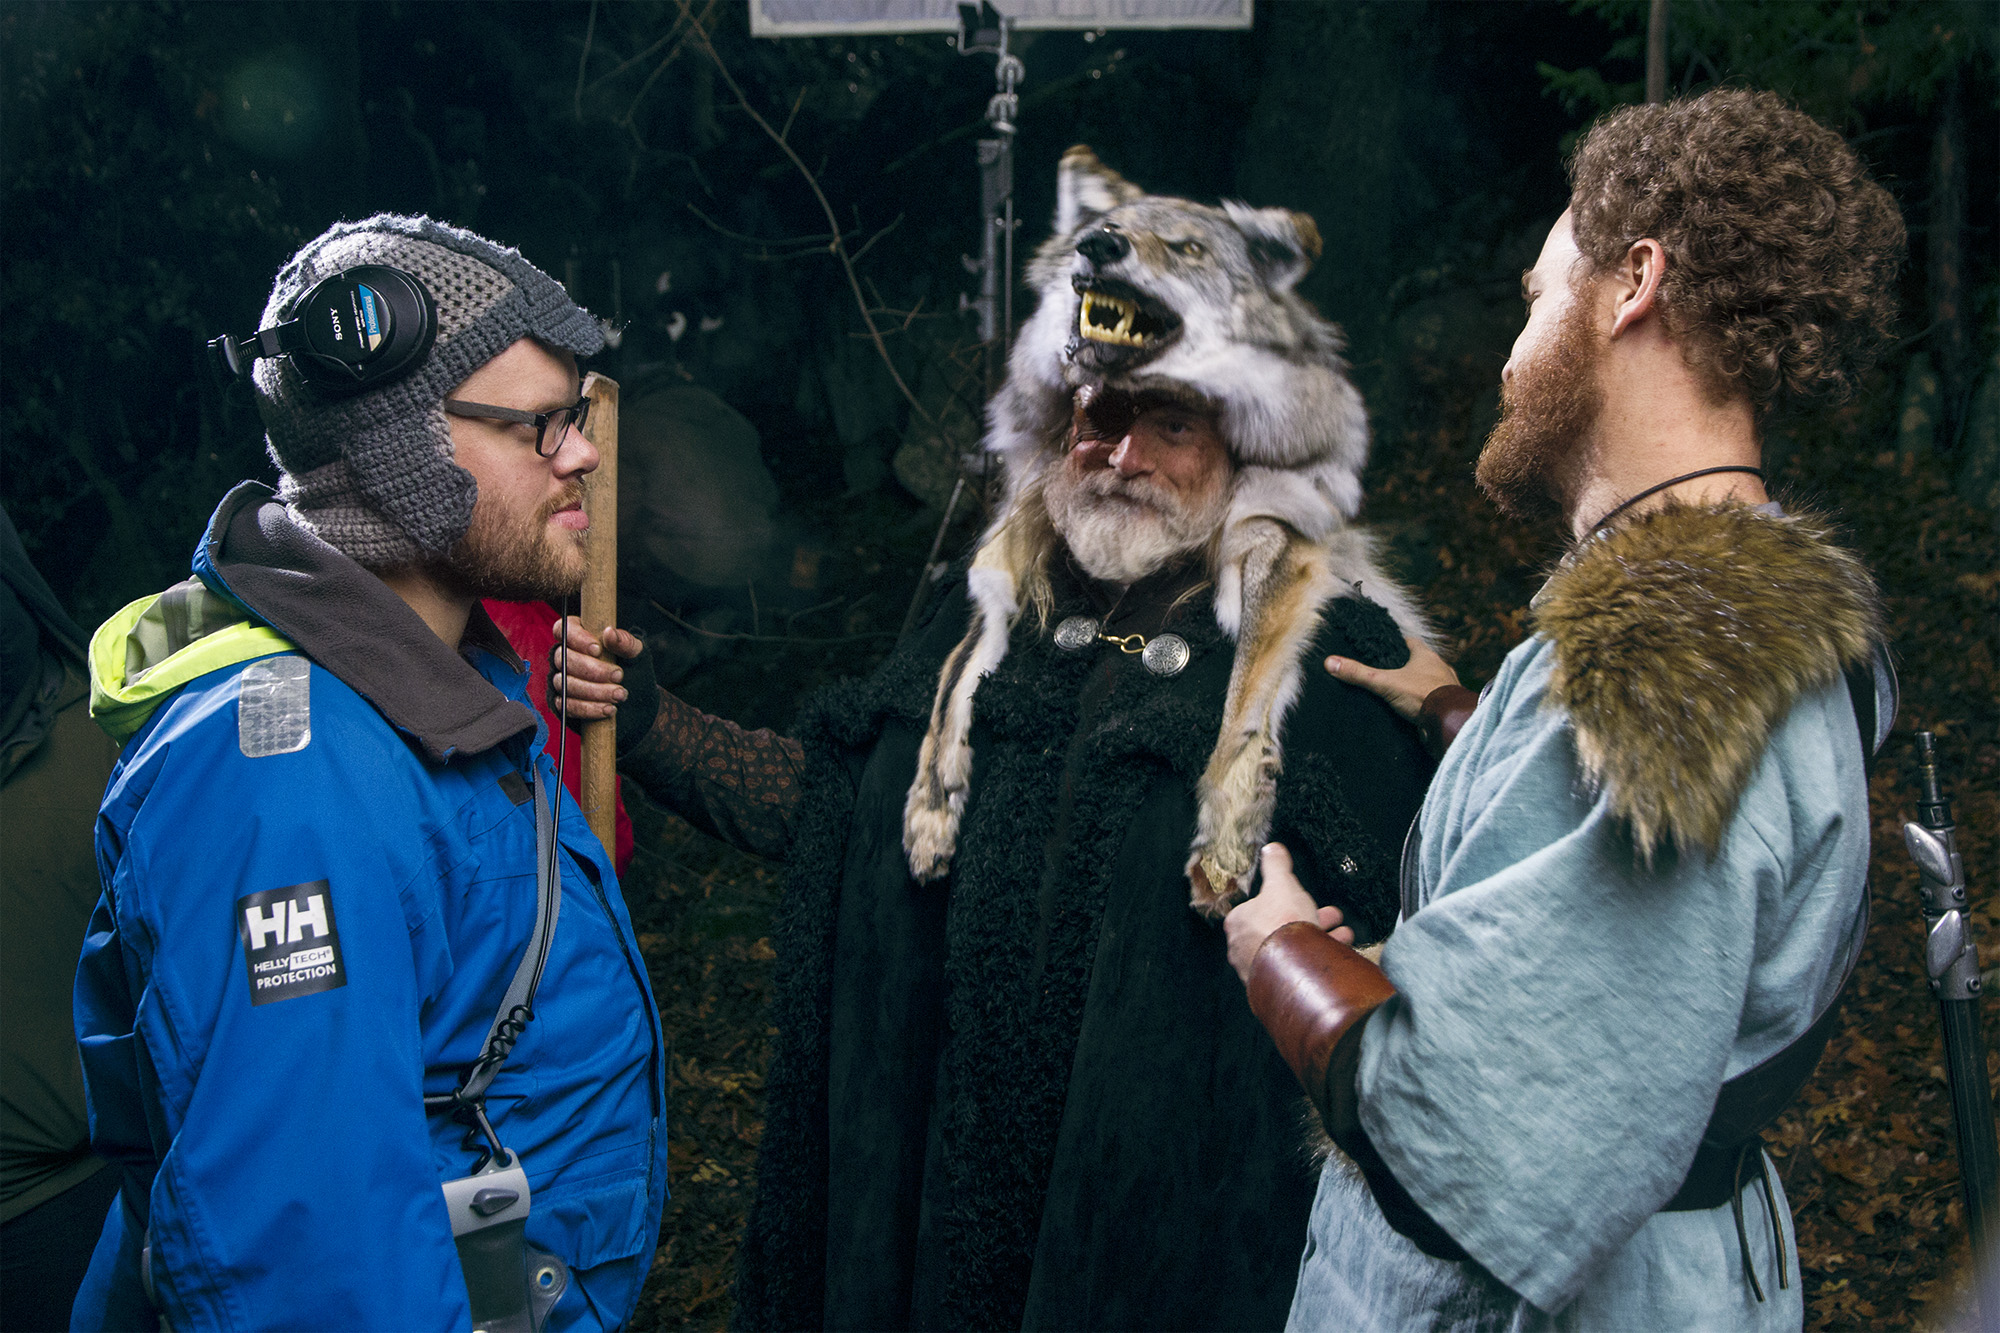 Morten Forland, Schno Mozingo and Vince Major laughing on the set of Total Awesome Viking Power